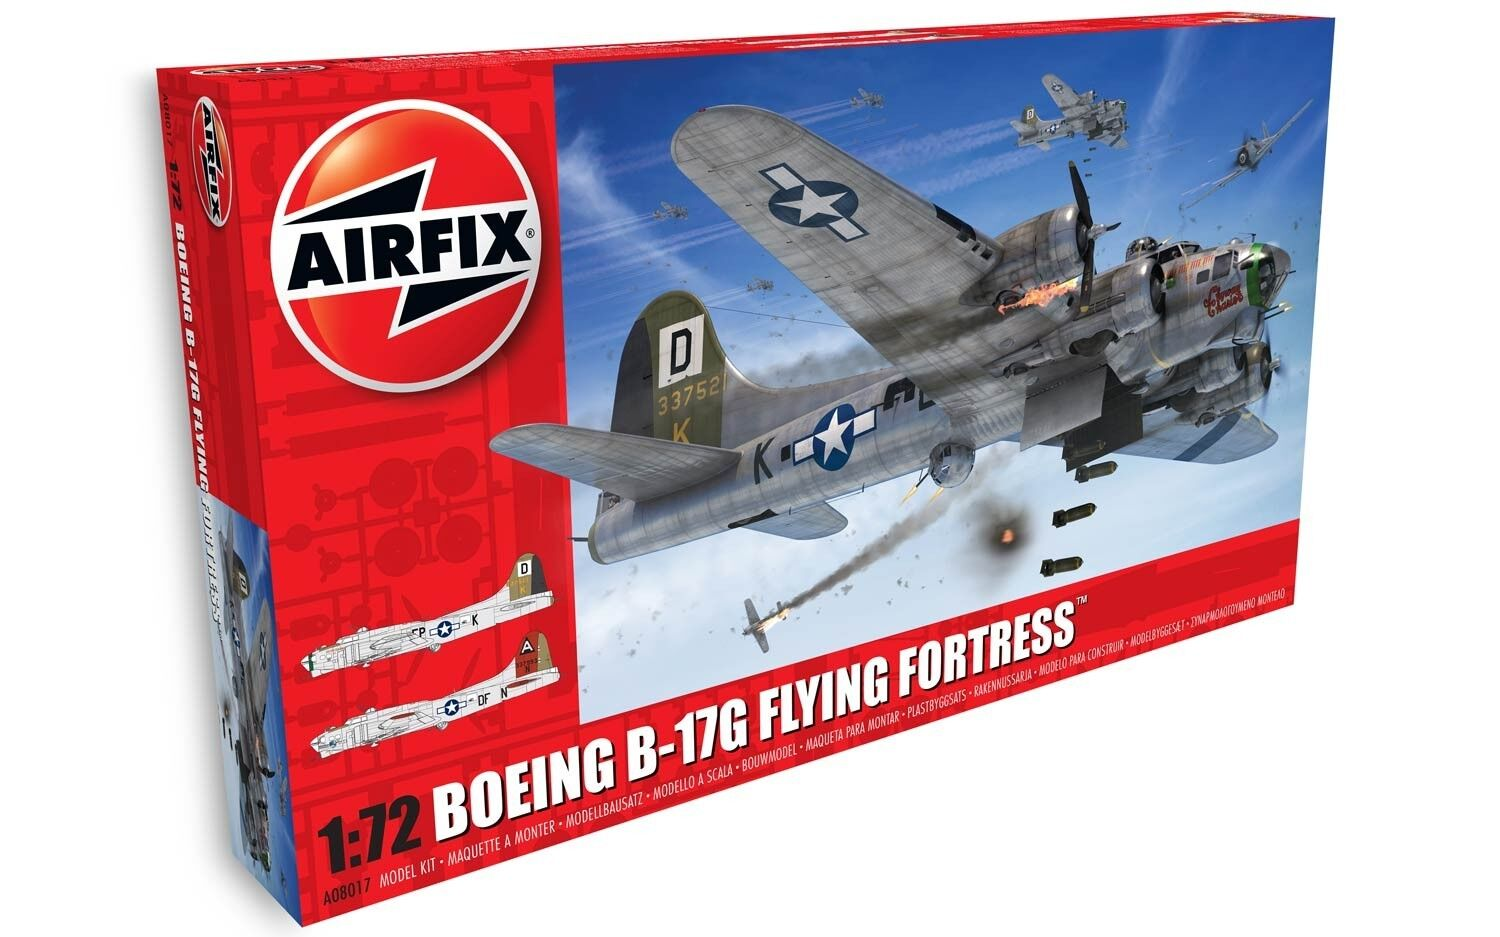 Airfix 1 72 Boeing B-17G Flying Fortress  NEW TOOLING  A08017